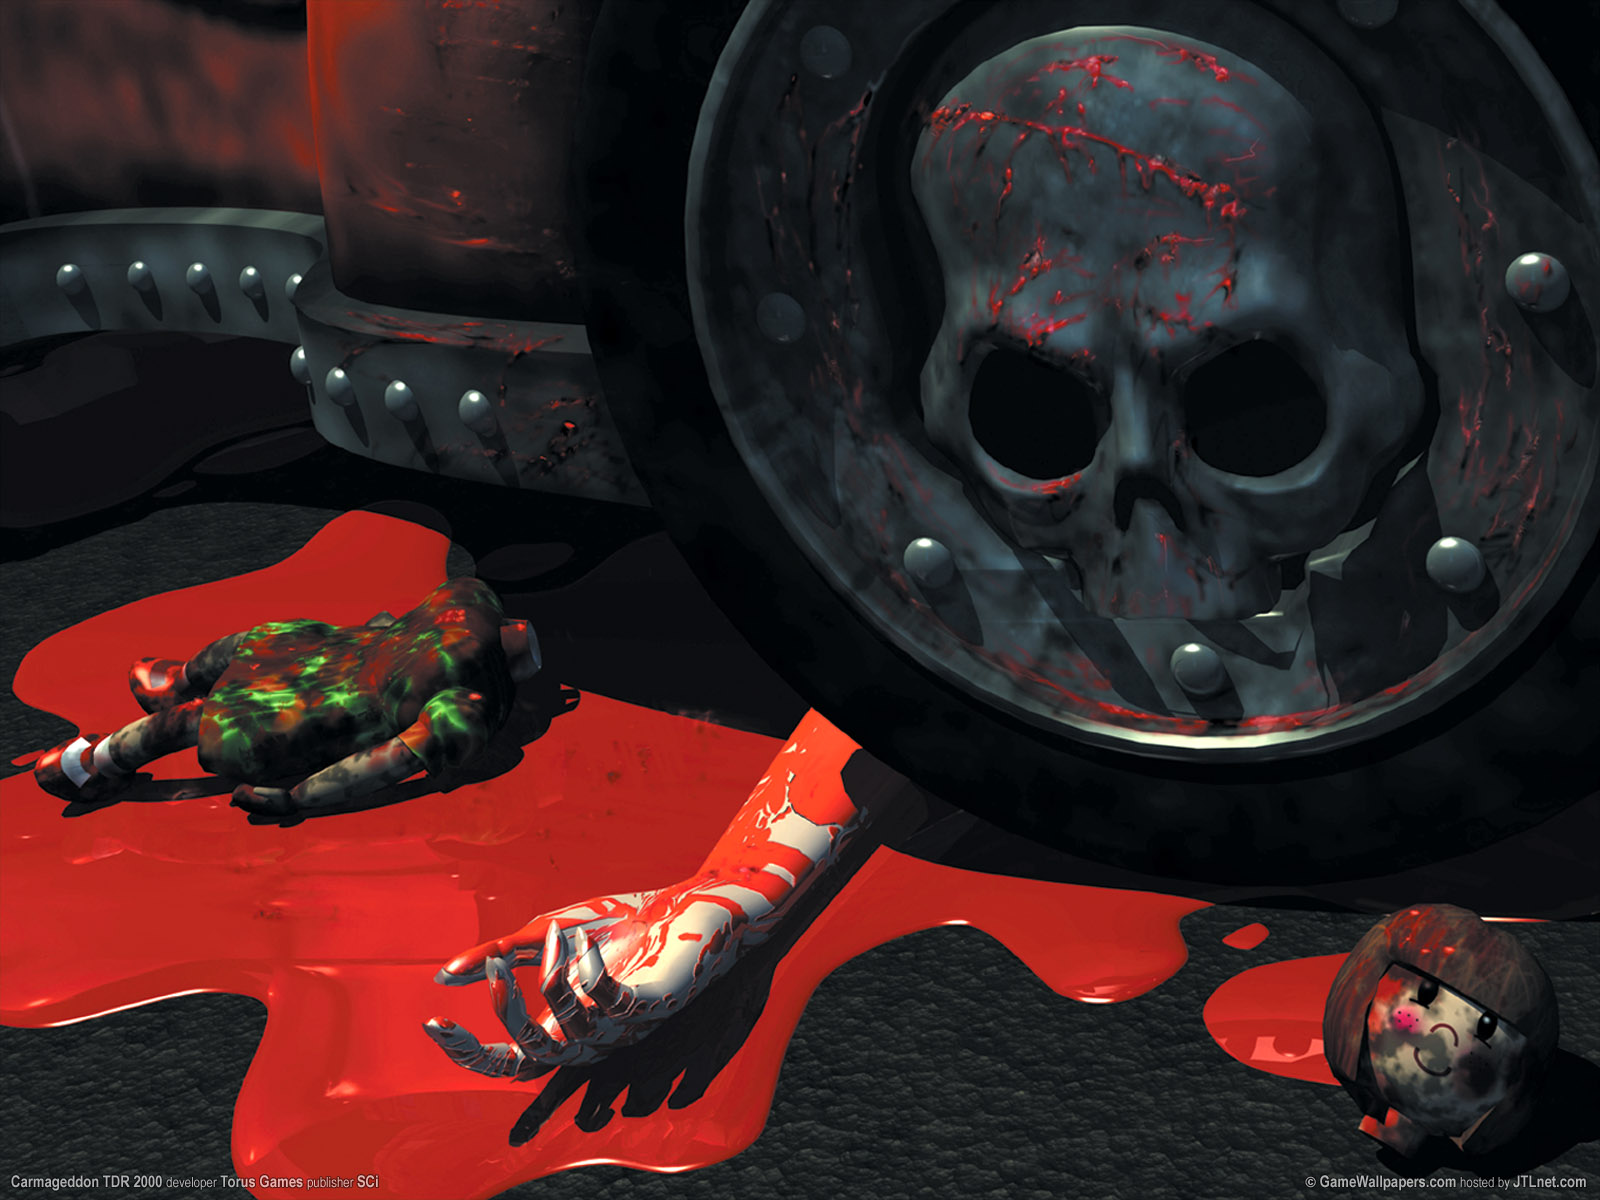 1600x1200 Carmageddon desktop PC and Mac wallpaper 1600x1200